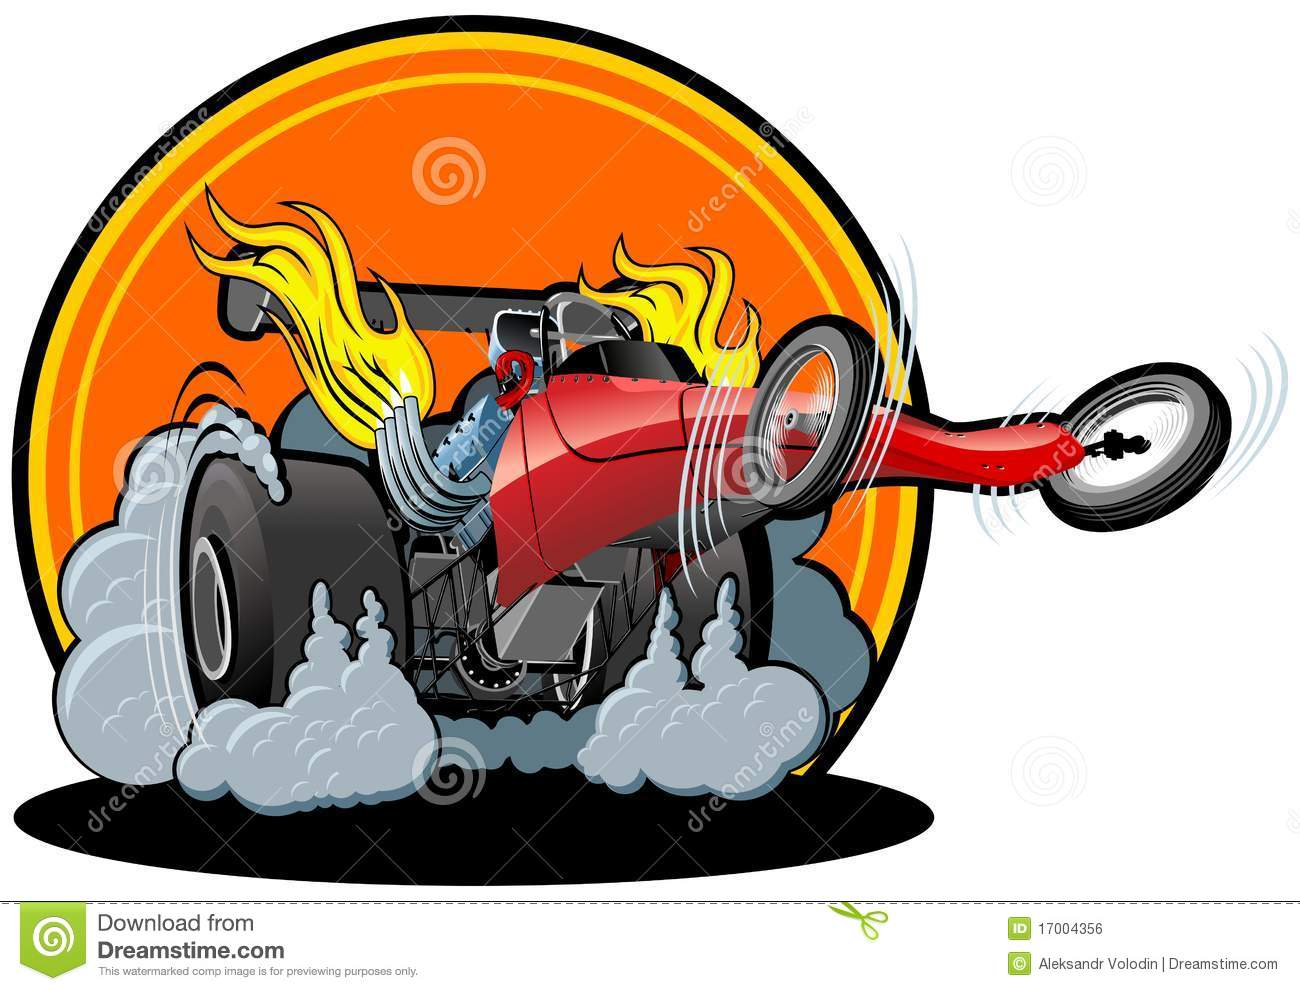 Muscle Cars Burnout Wallpapers Vector Cartoon Dragster Stock Vector Illustration Of